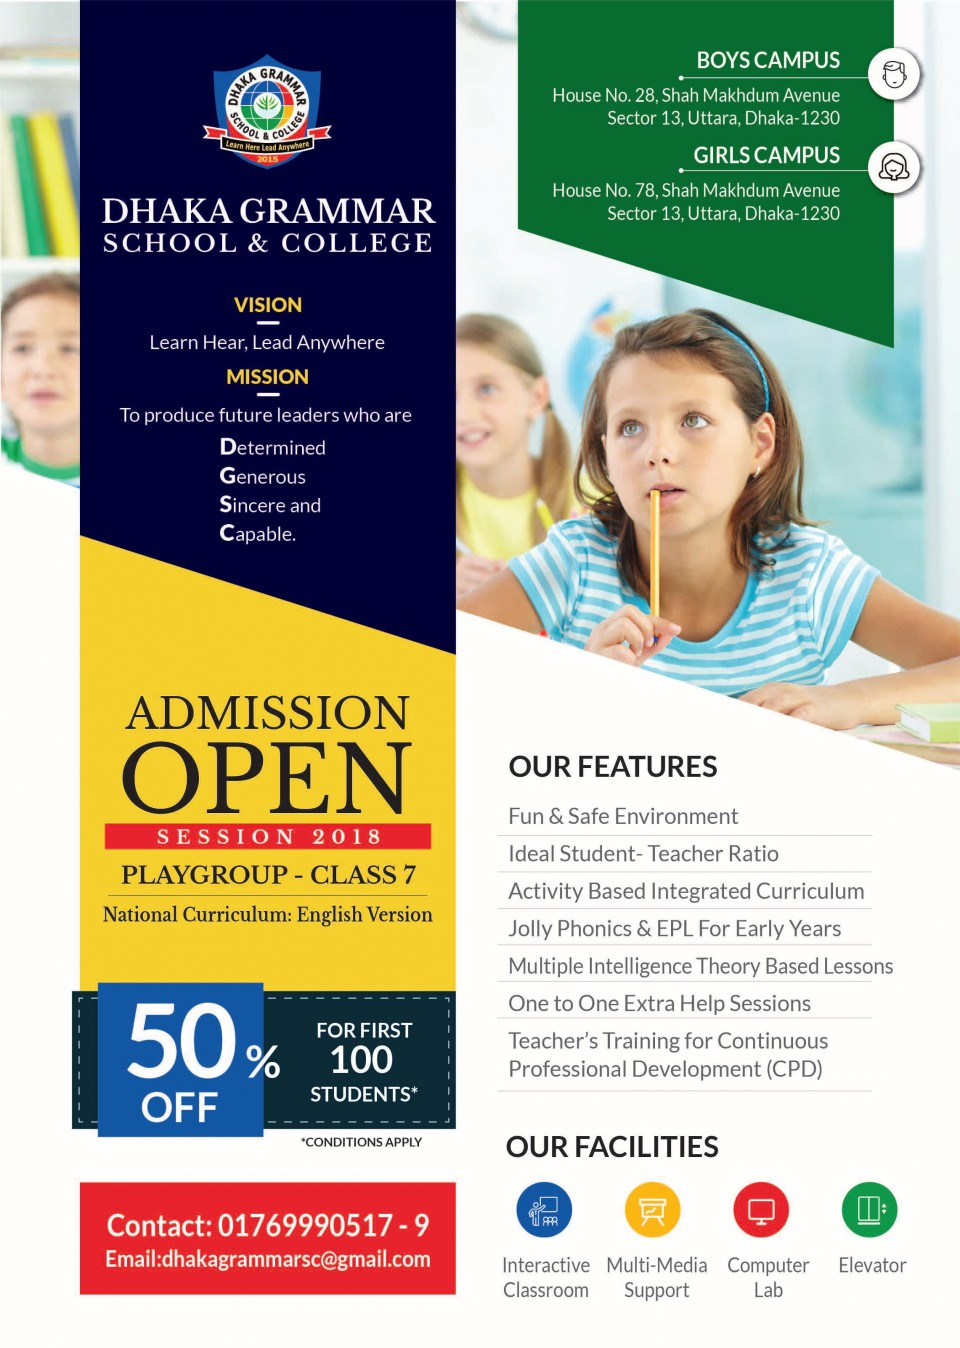 001 Outstanding School Open House Flyer Template Highest Clarity  Elementary Free Word960